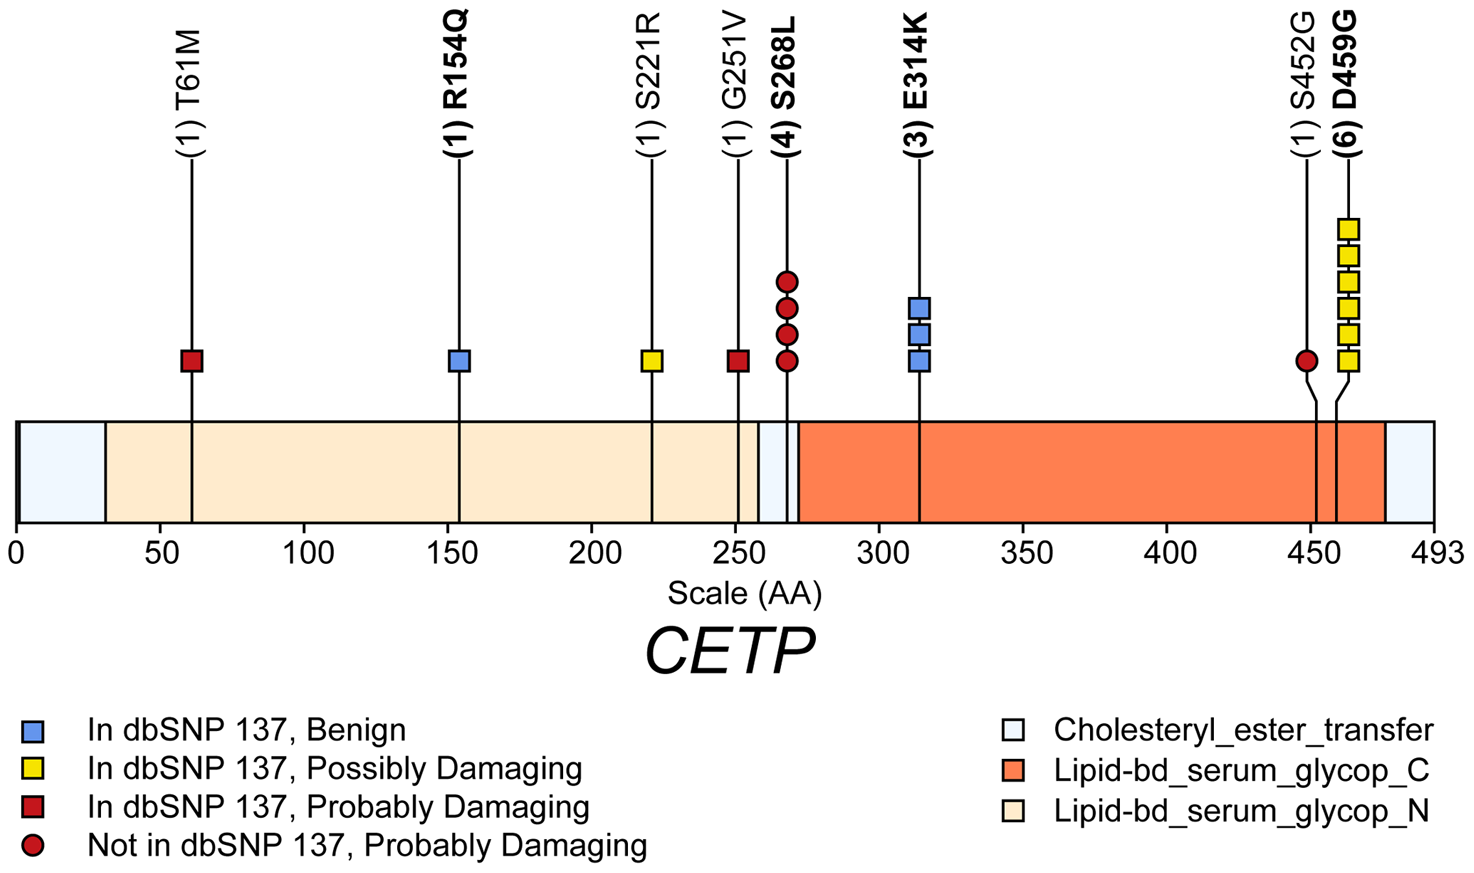 Schematic of rare (MAF&lt;1%) non-synonymous variants used in the gene-level test HDL-C in gene <i>CETP</i>.